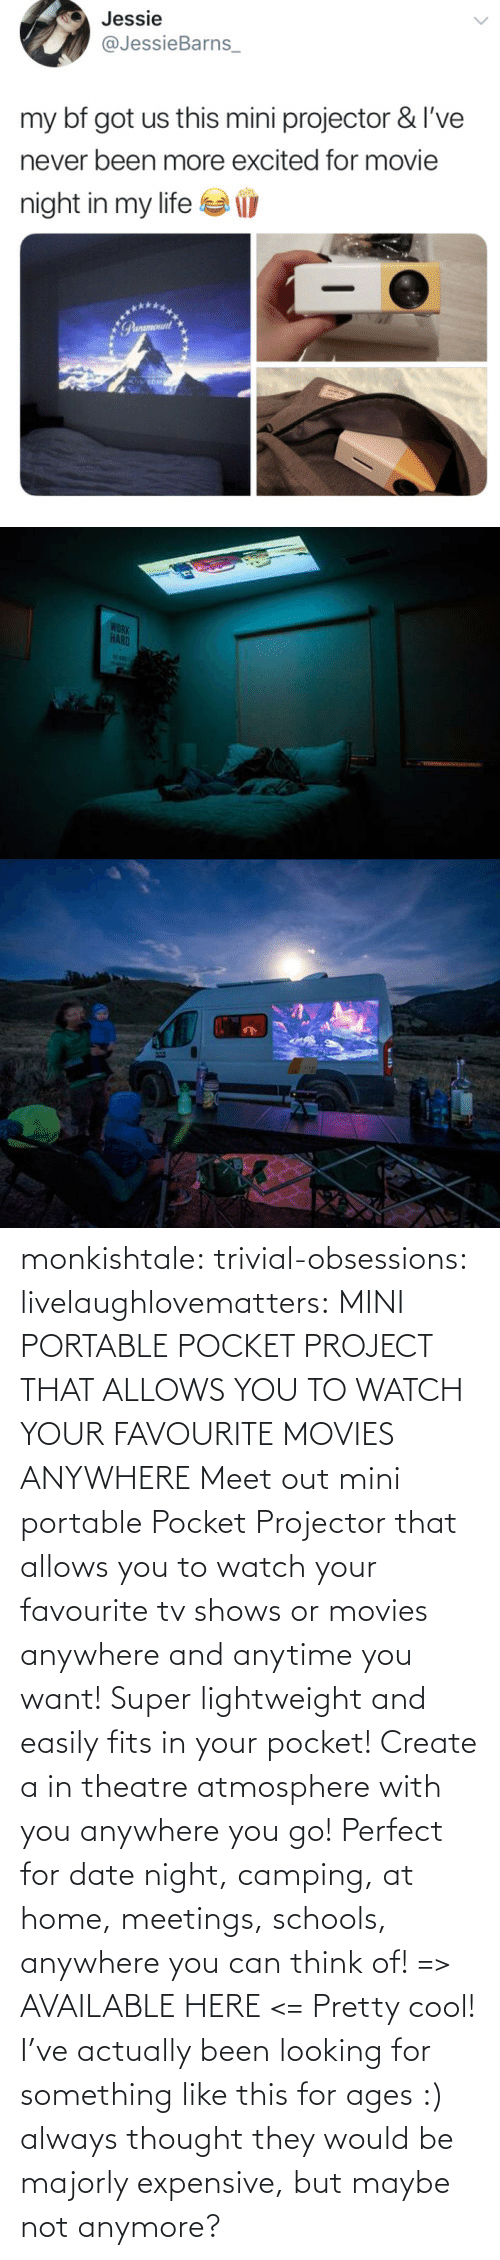 /tv/ : monkishtale: trivial-obsessions:   livelaughlovematters:   MINI PORTABLE POCKET PROJECT THAT ALLOWS YOU TO WATCH YOUR FAVOURITE MOVIES ANYWHERE Meet out mini portable Pocket Projector that allows you to watch your favourite tv shows or movies anywhere and anytime you want! Super lightweight and easily fits in your pocket! Create a in theatre atmosphere with you anywhere you go! Perfect for date night, camping, at home, meetings, schools, anywhere you can think of! => AVAILABLE HERE <=    Pretty cool!    I've actually been looking for something like this for ages :) always thought they would be majorly expensive, but maybe not anymore?